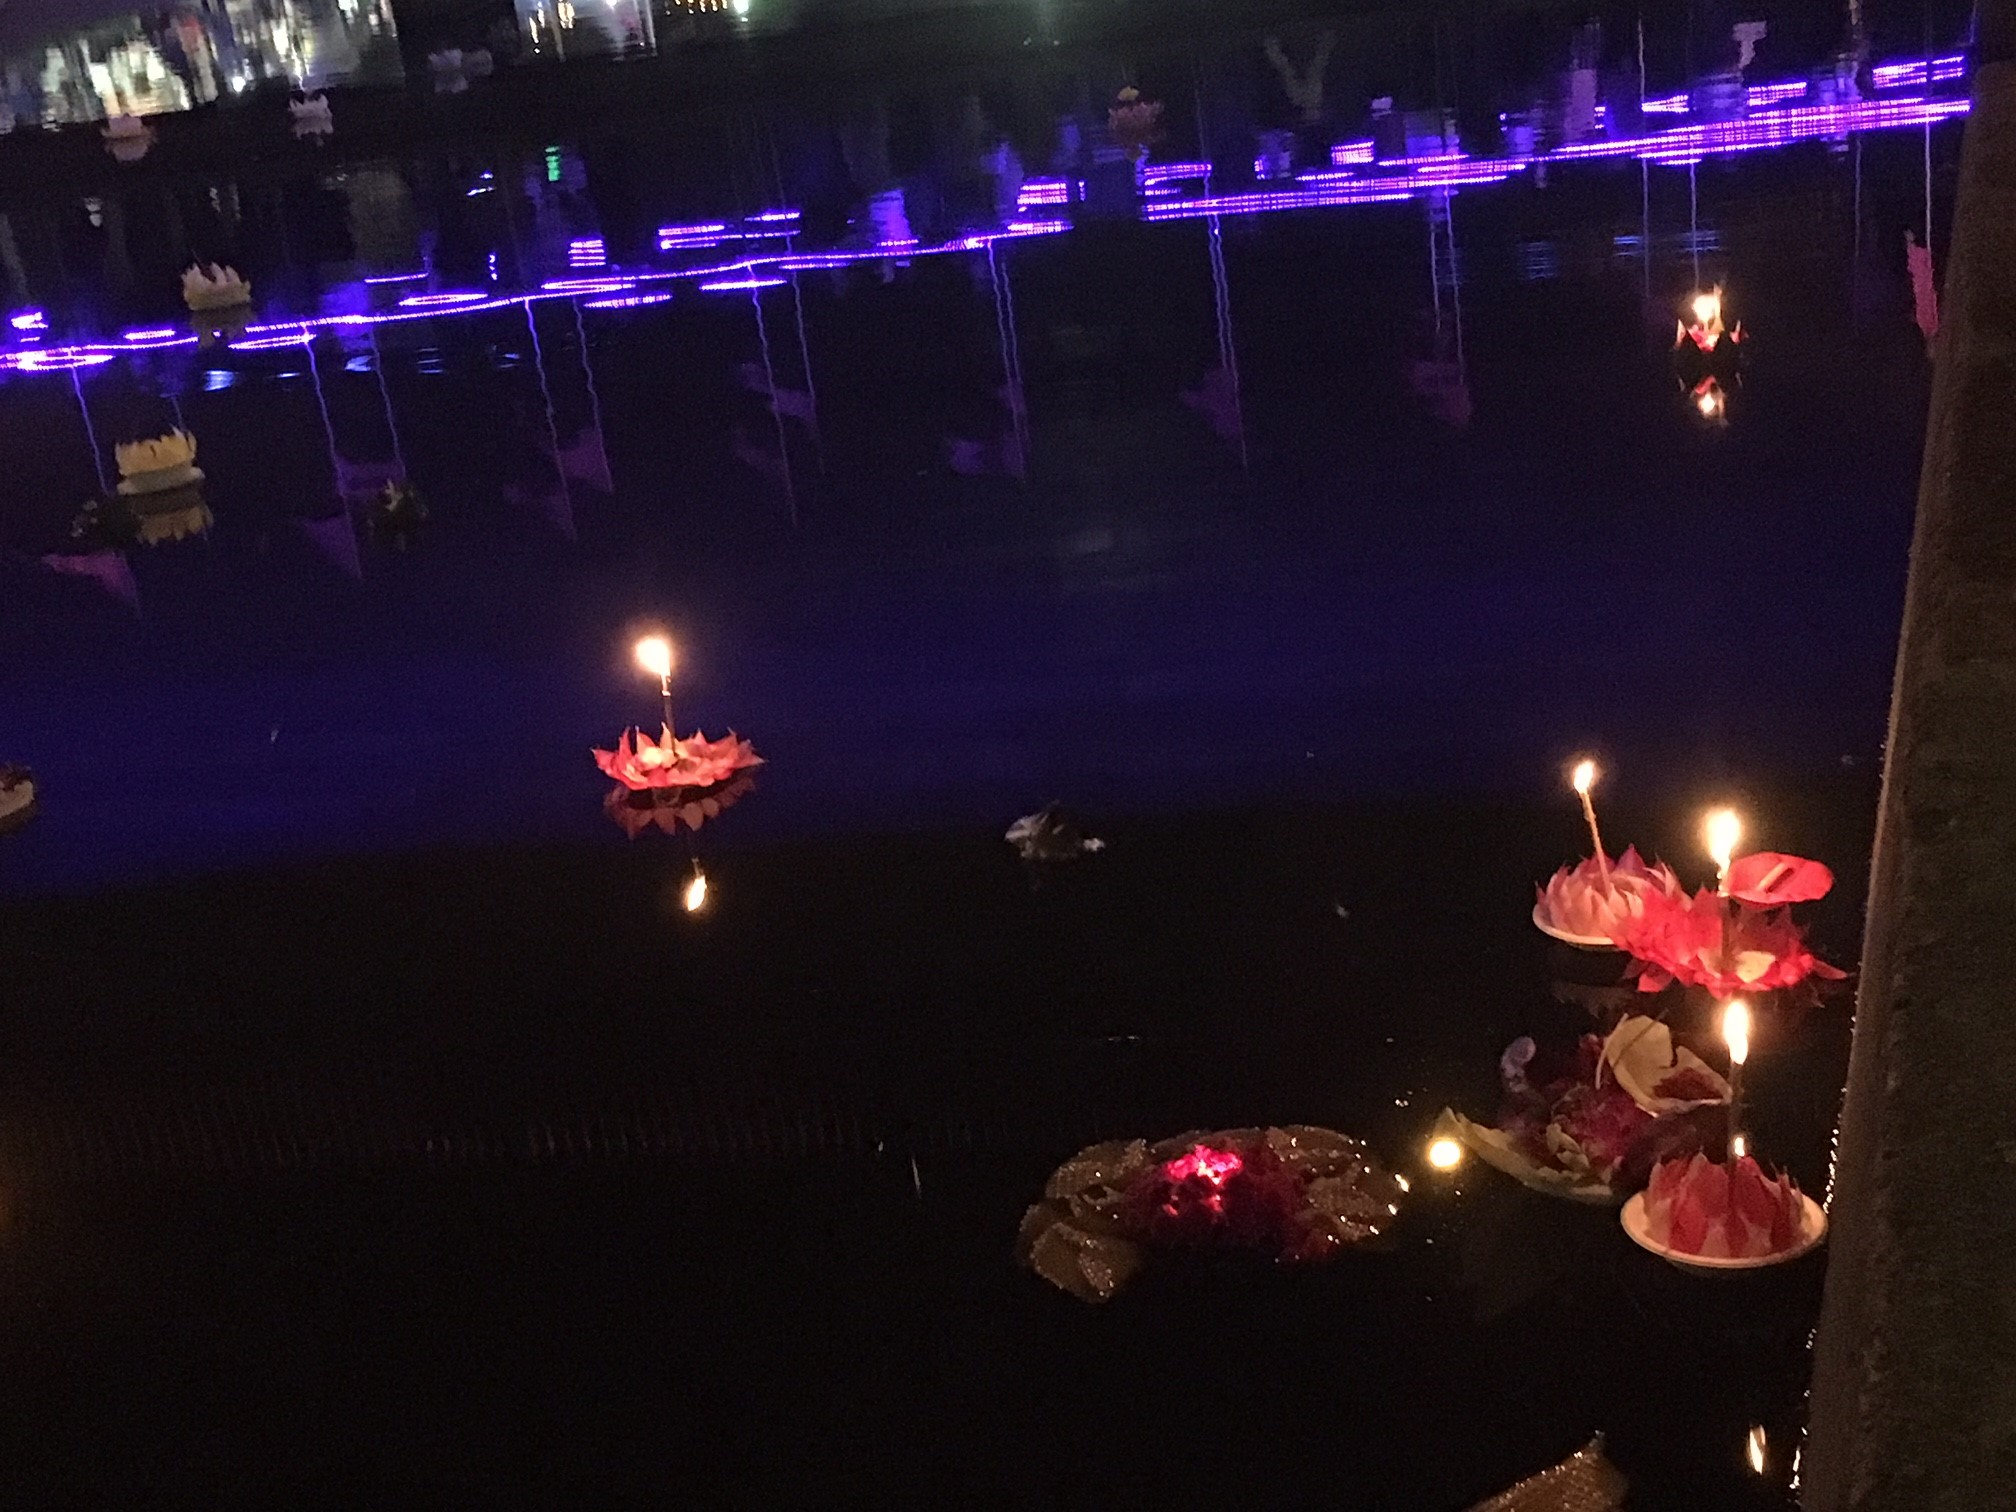 Kratong (floating lanterns) on the Parramatta river carrying people's prayers and best wishes.